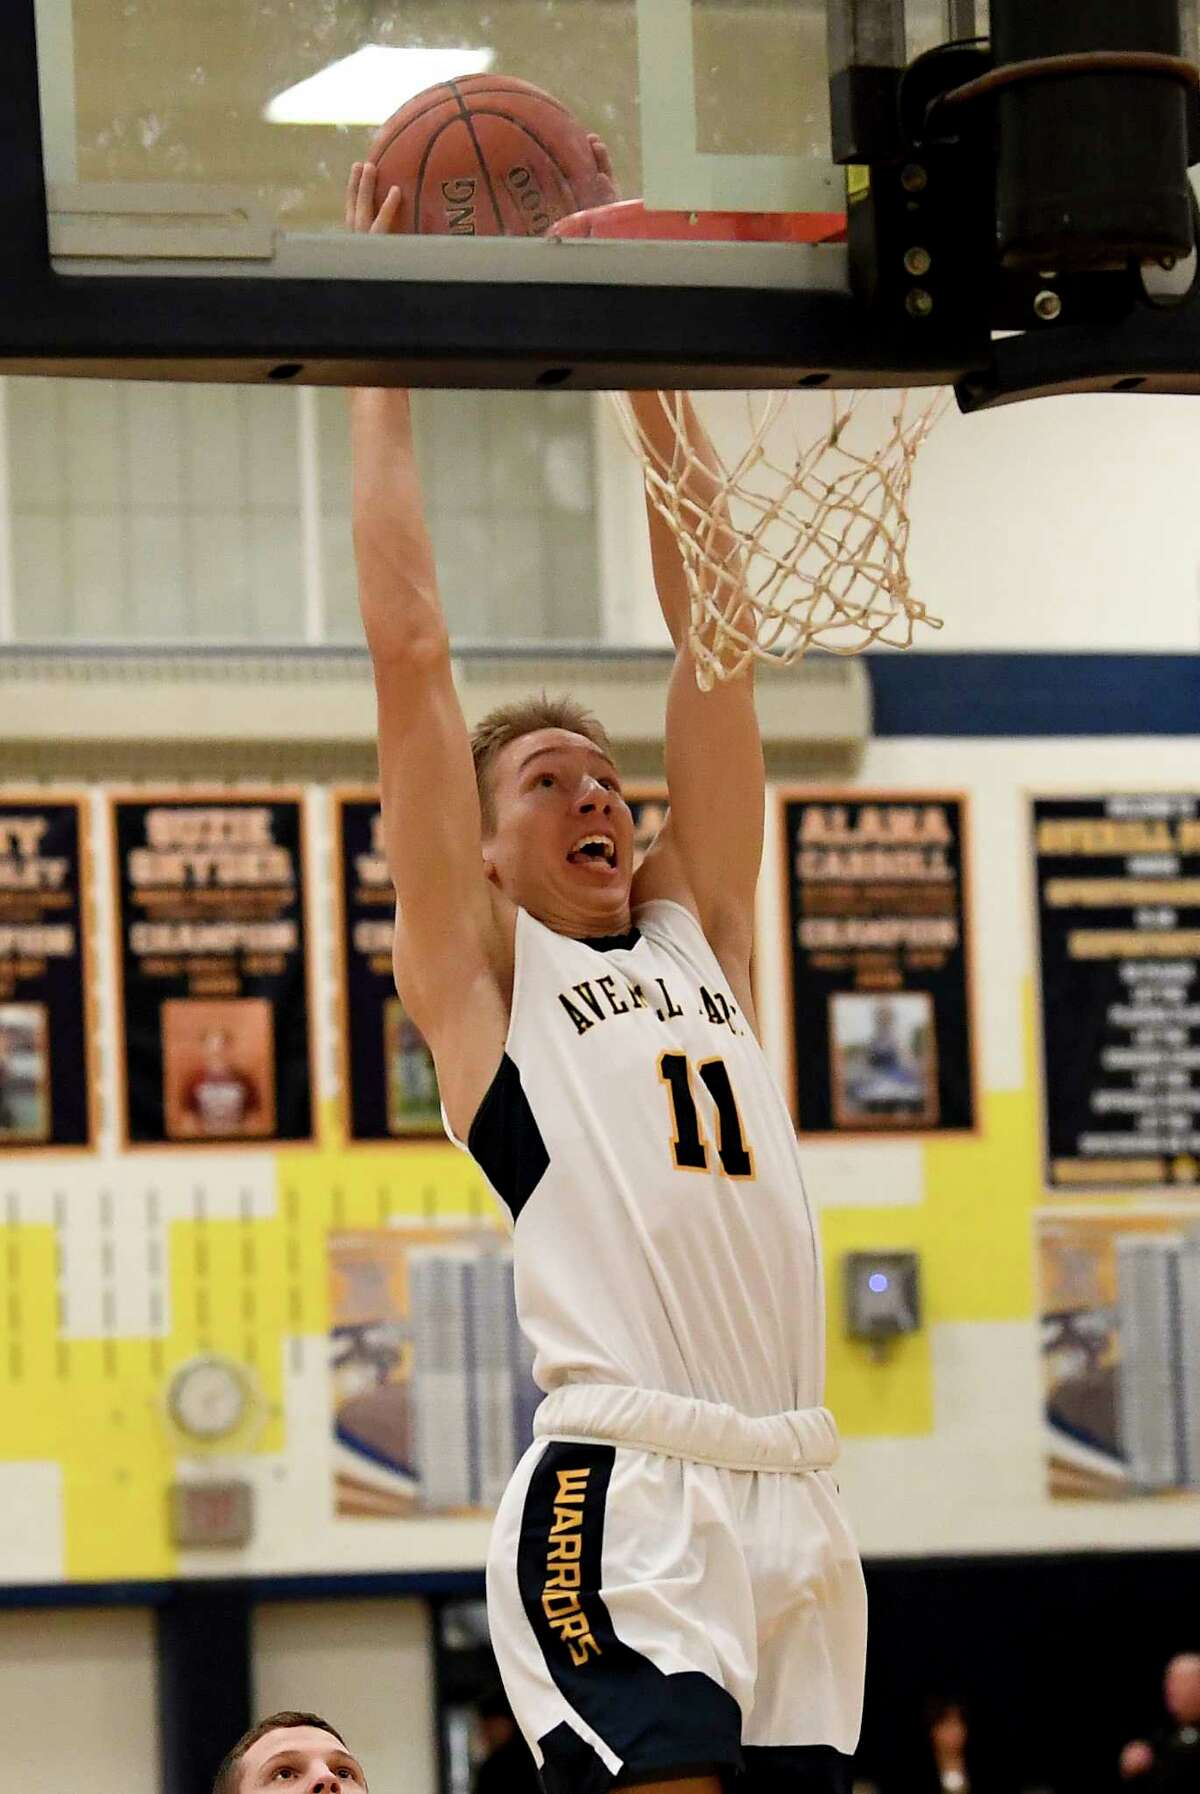 Averill Park's Matt Lettko (11) dunks the ball against the Hudson Falls' during a boys' high school basketball game Wednesday, Jan. 22, 2020, in Averill Park, N.Y. (Hans Pennink / Special to the Times Union) ORG XMIT: 012320_hsbb_HP101